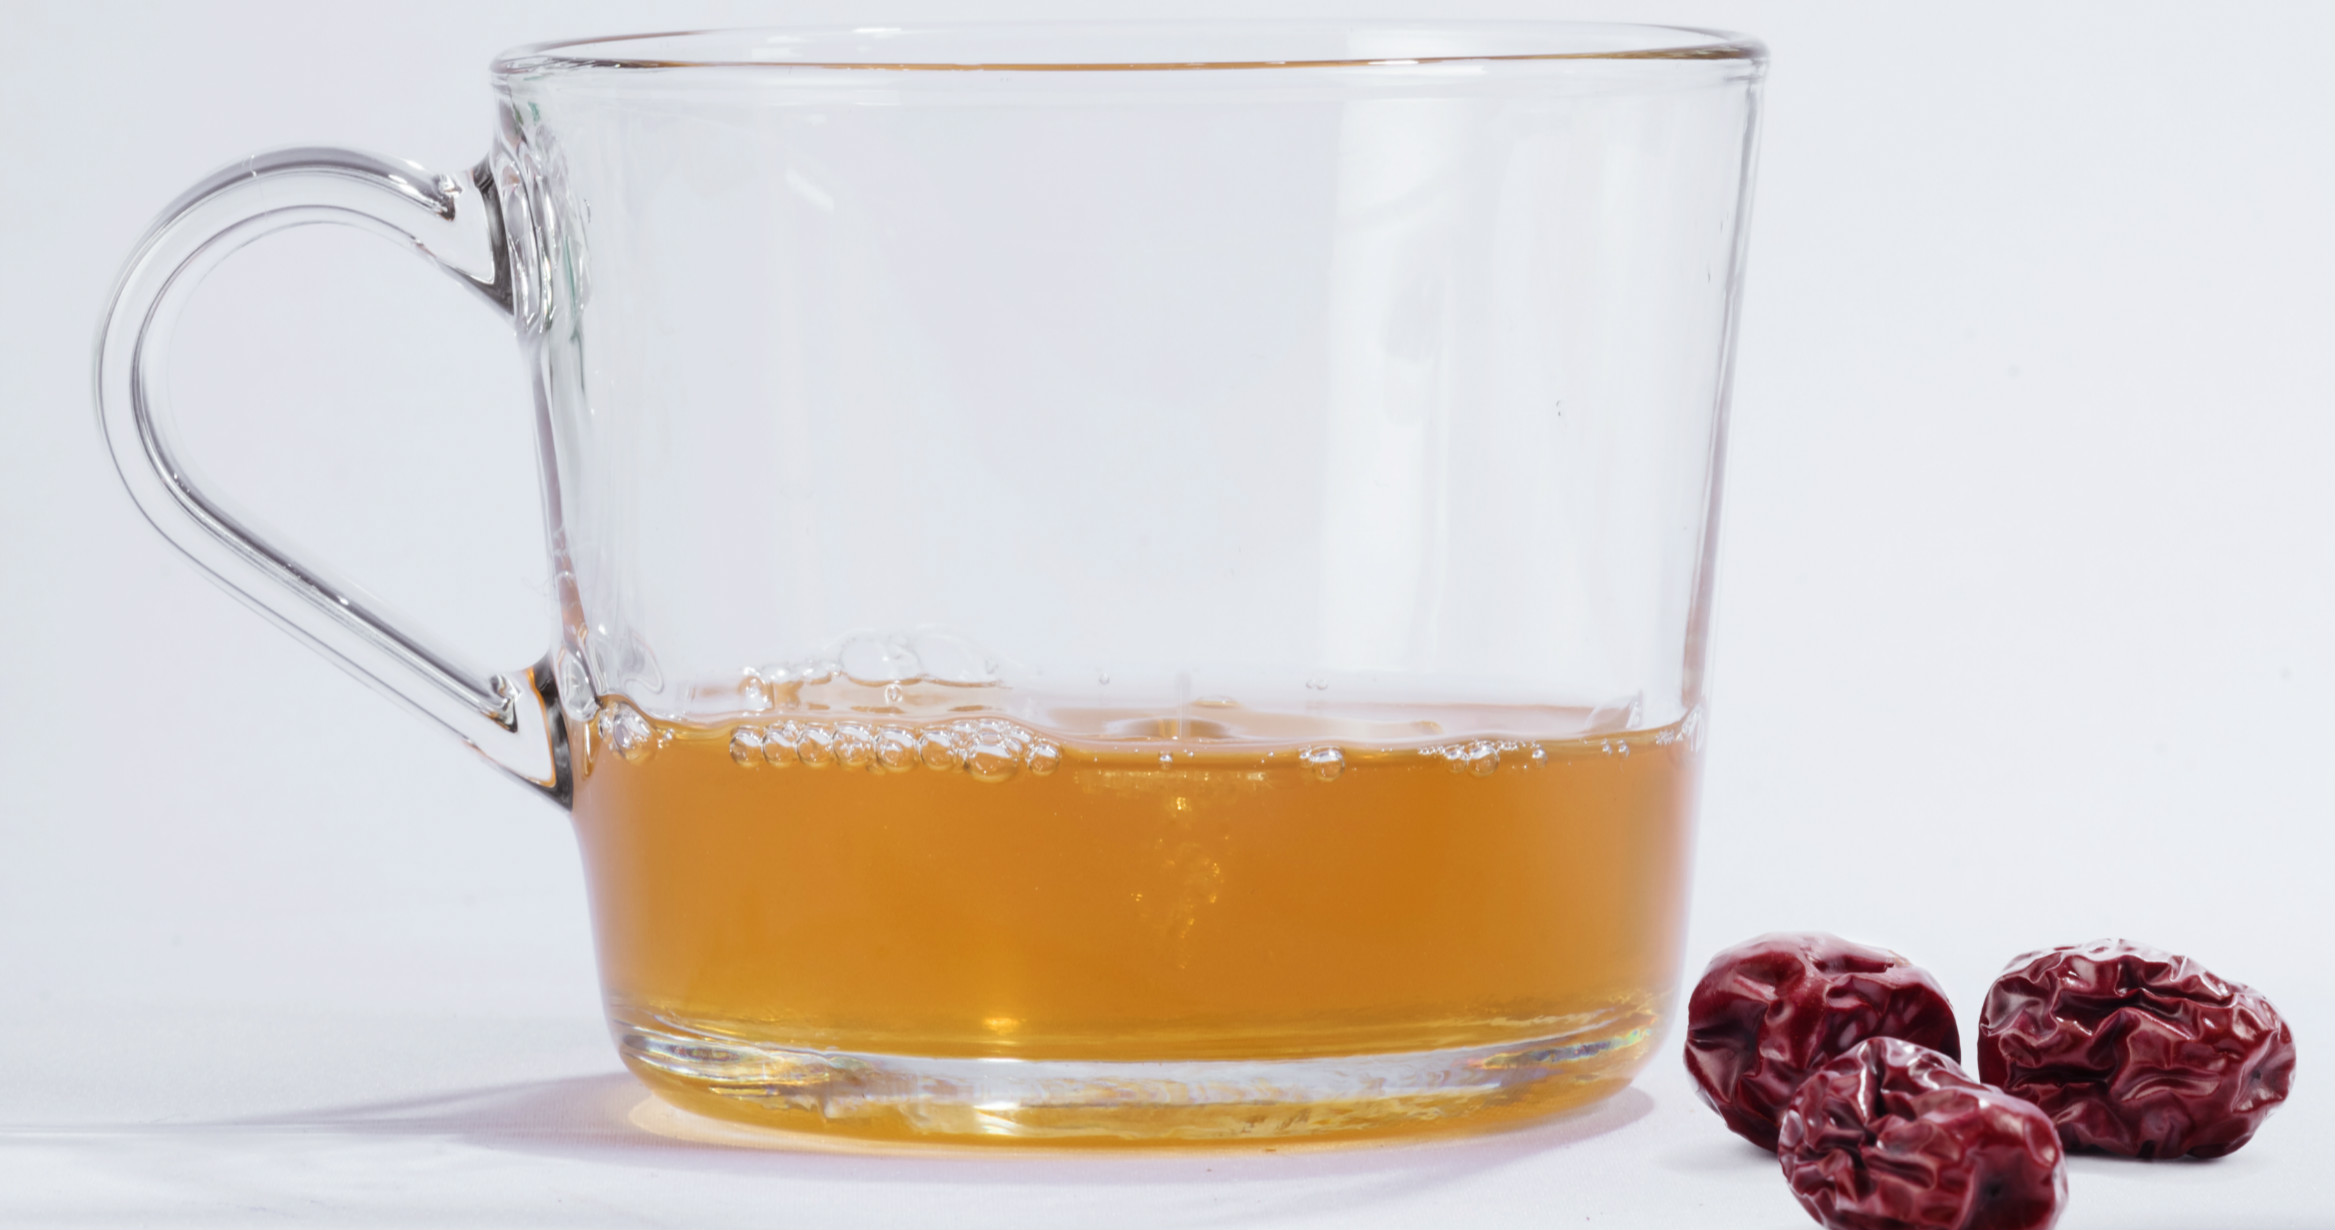 What are the benefits of drinking honey jujube tea?